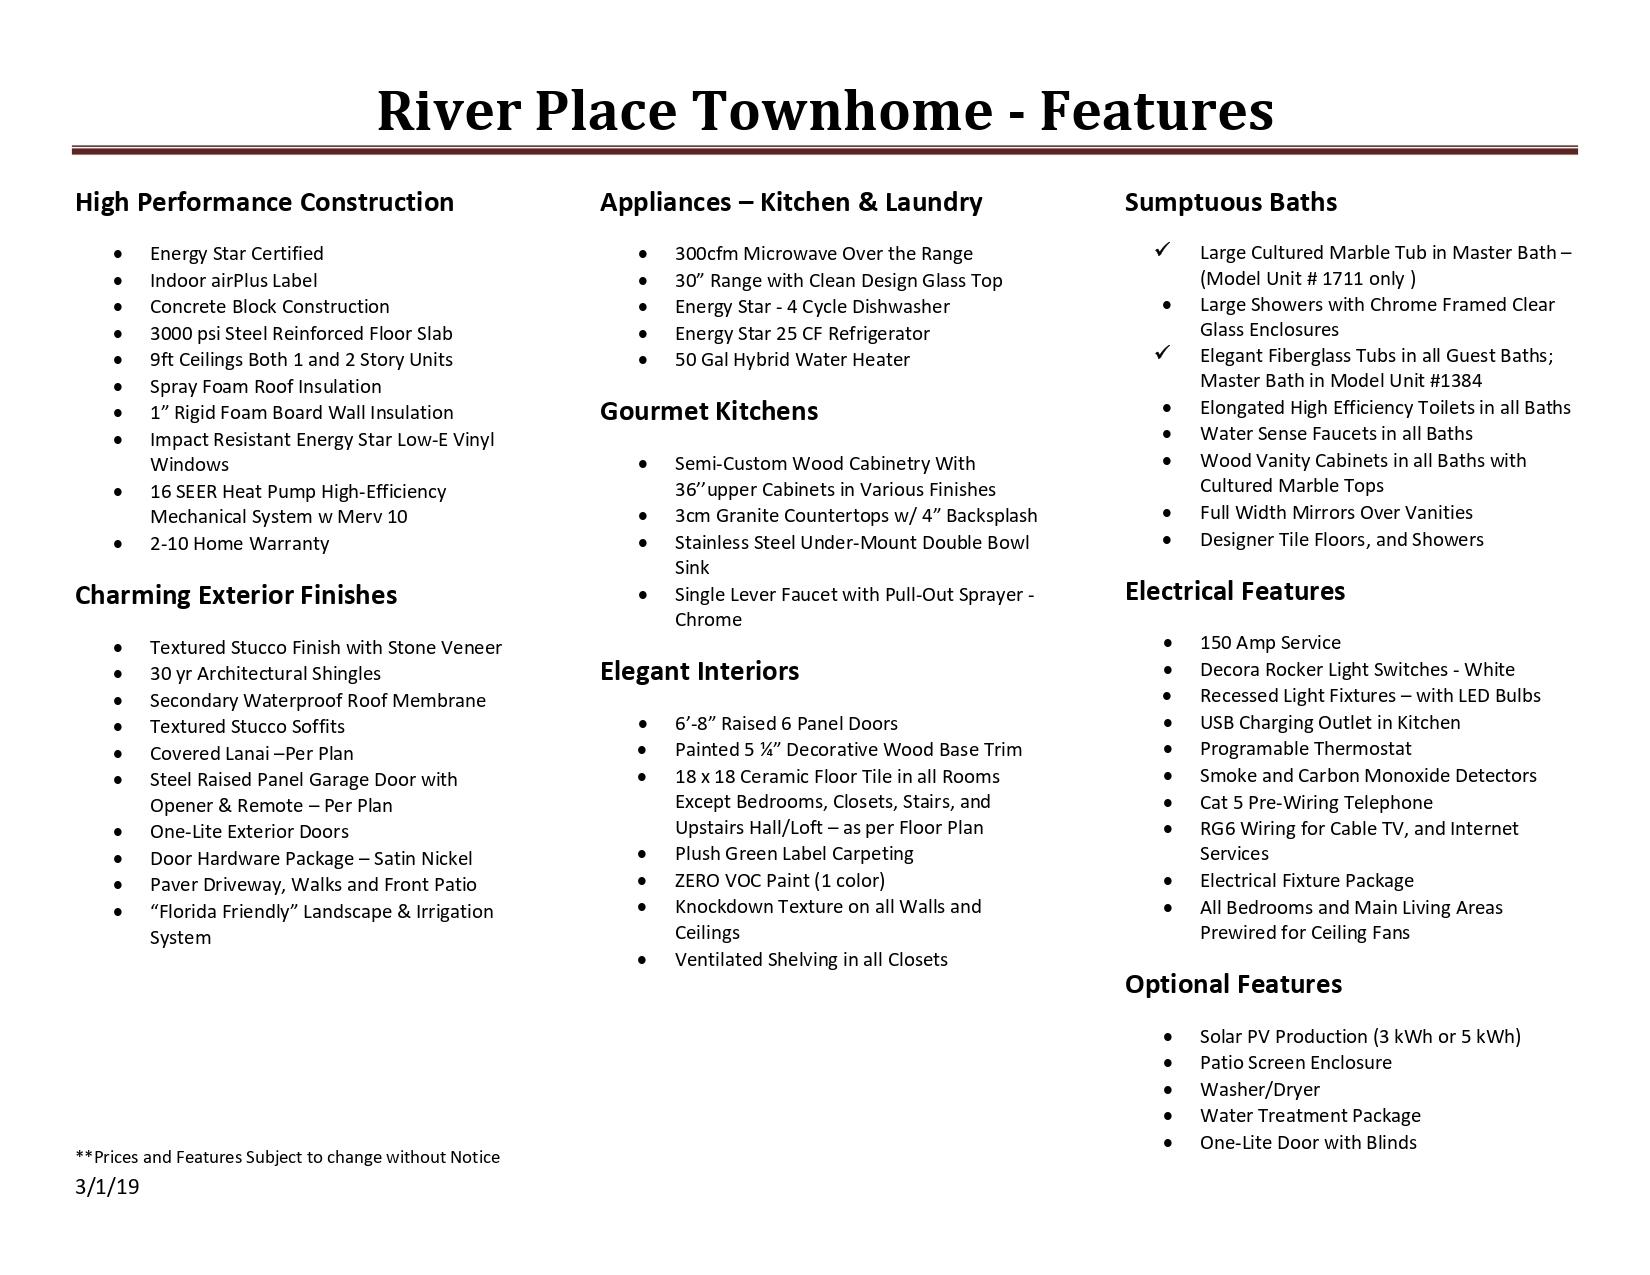 ECOVILLAGE RIVER PLACE REAL ESTATE